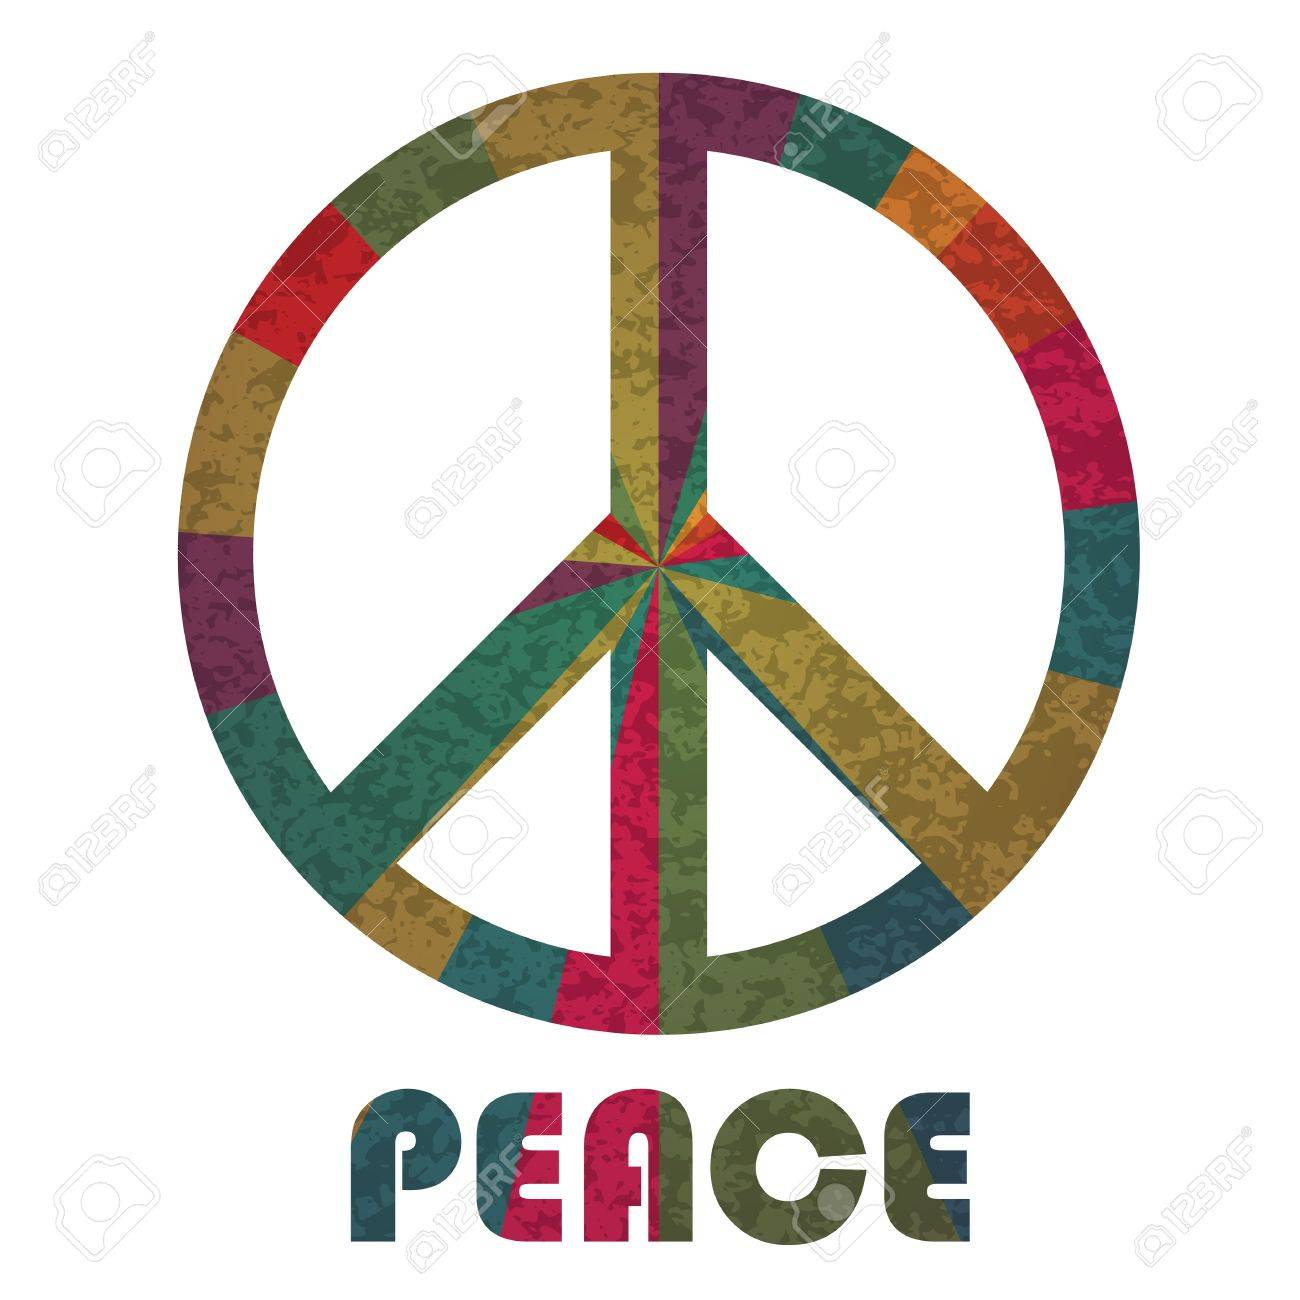 Peace Symbol And Text Silhouette With Rays Pattern Isolated On